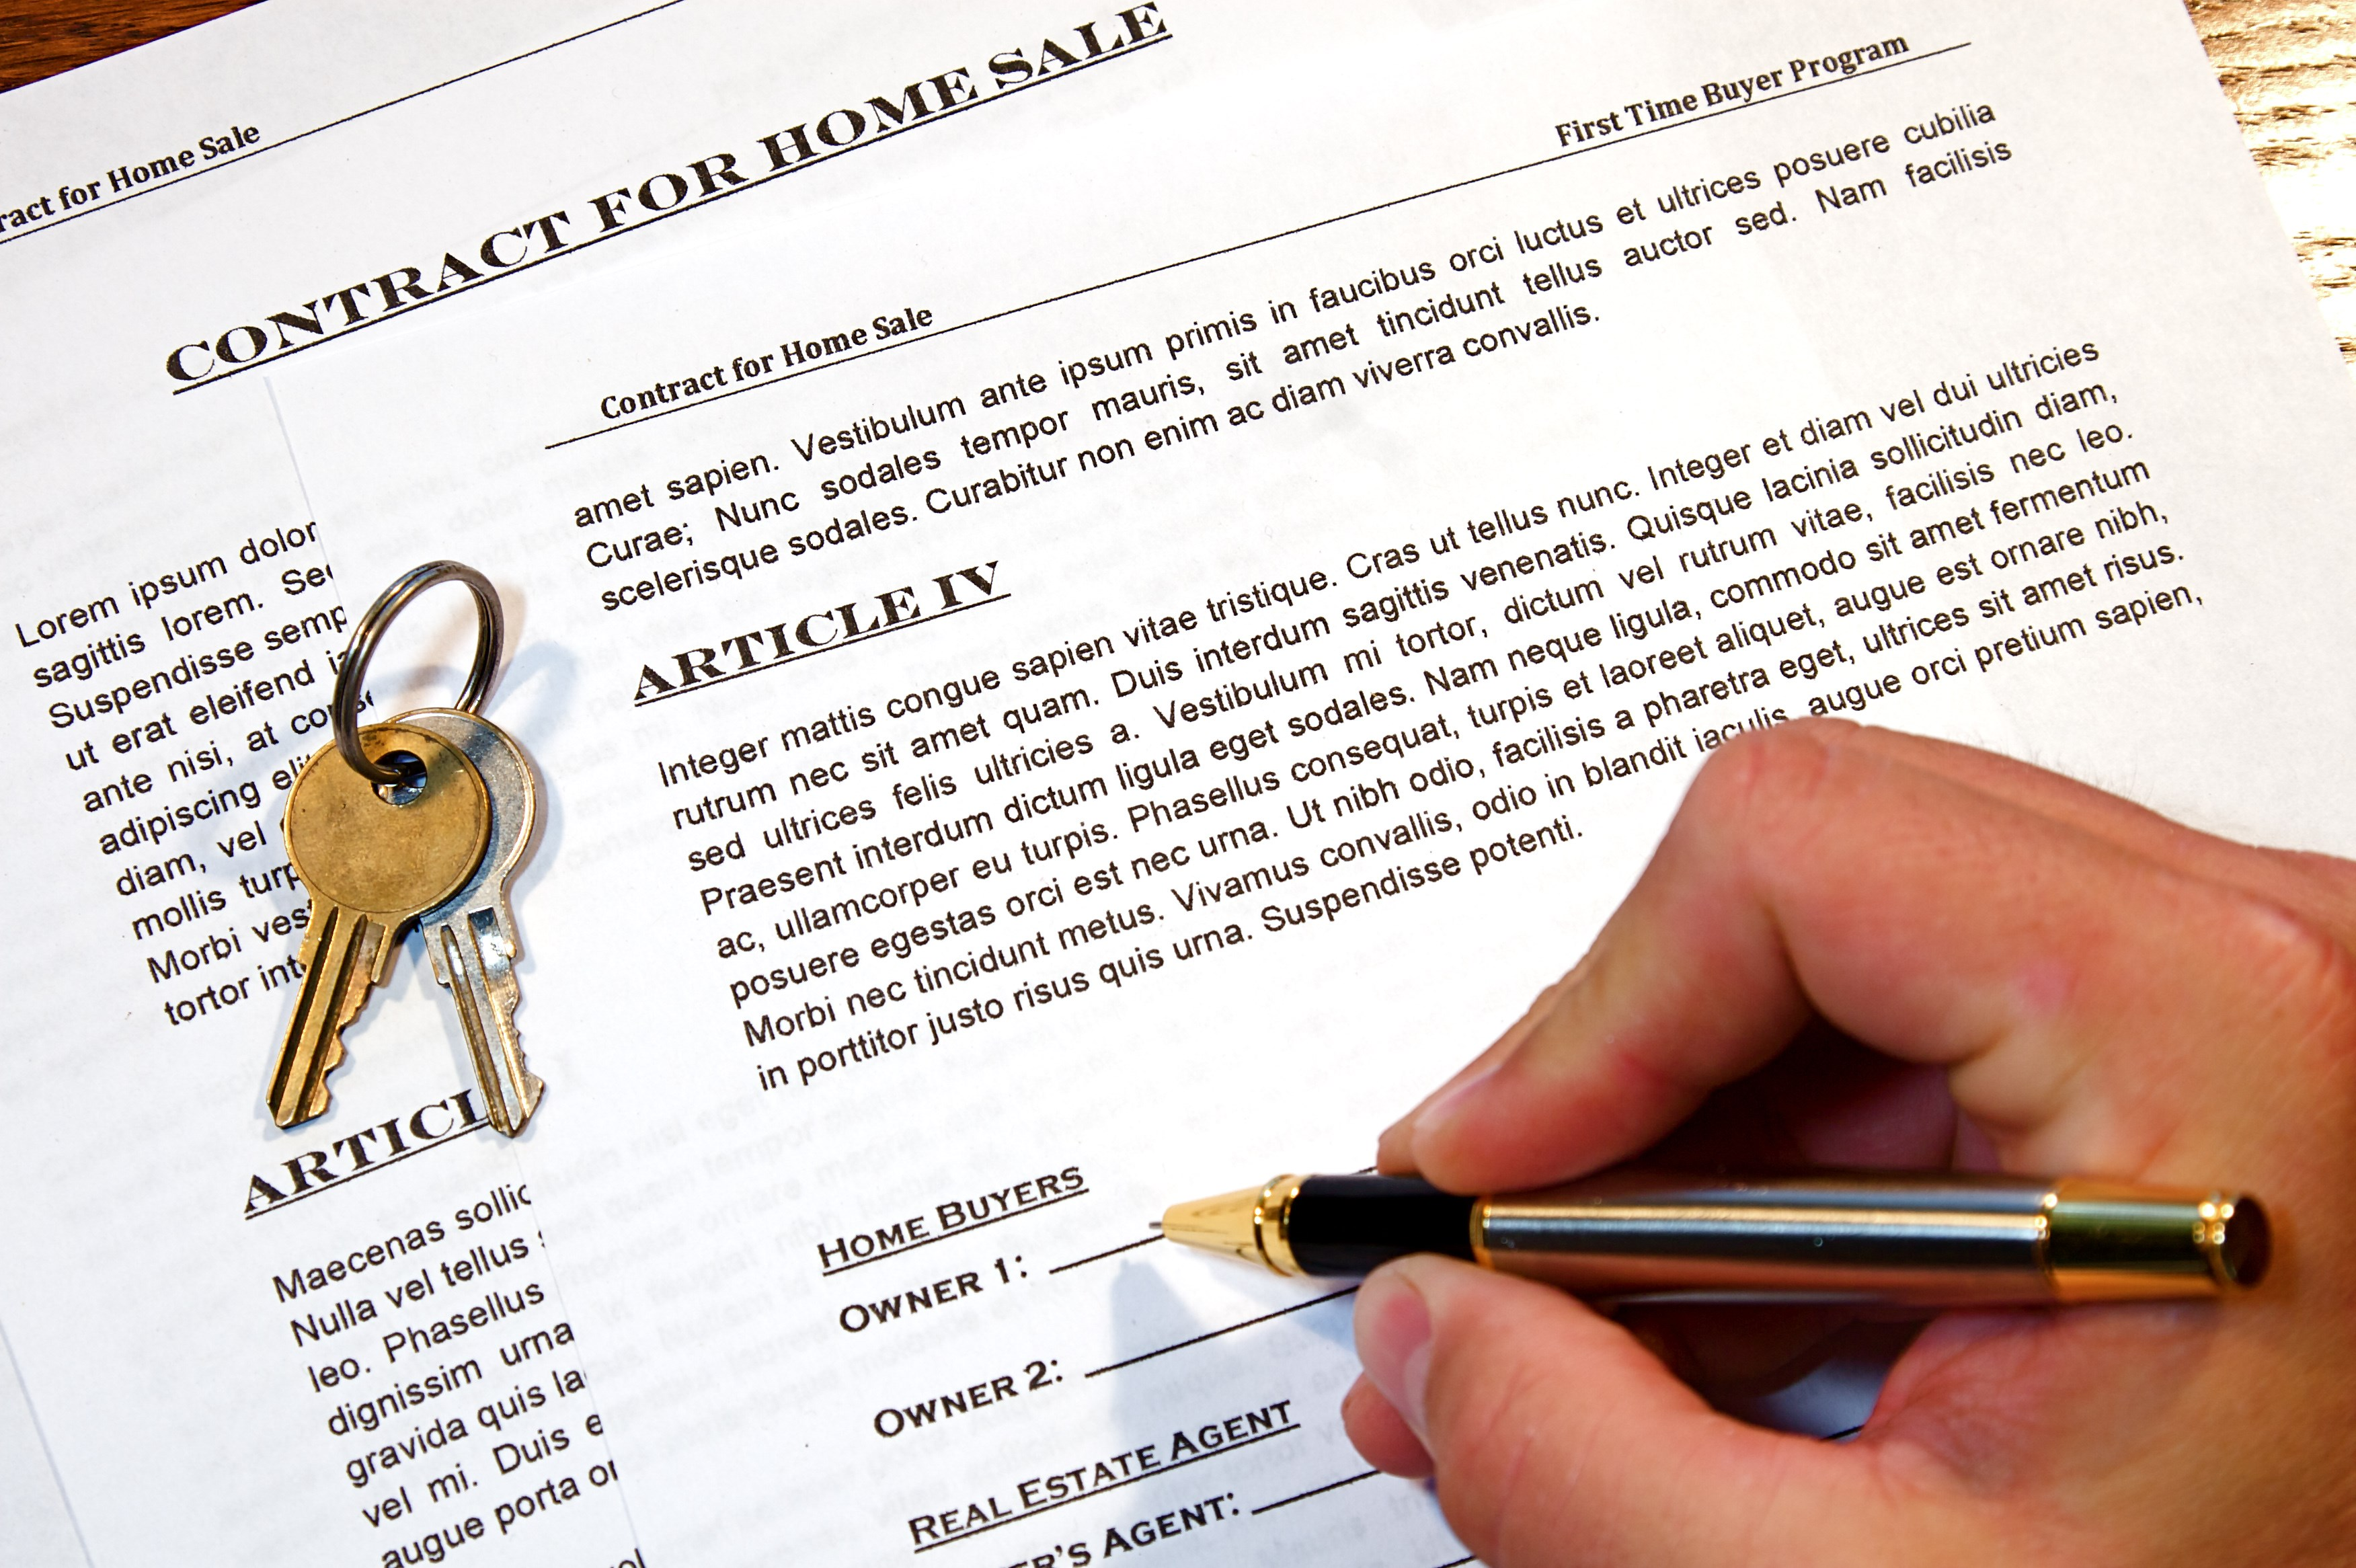 Guide to working with real estate agents steele san diego homes be deducted from the profit on your home unless you are selling with very low equity in which case you may need to bring a little cash to the table spiritdancerdesigns Image collections